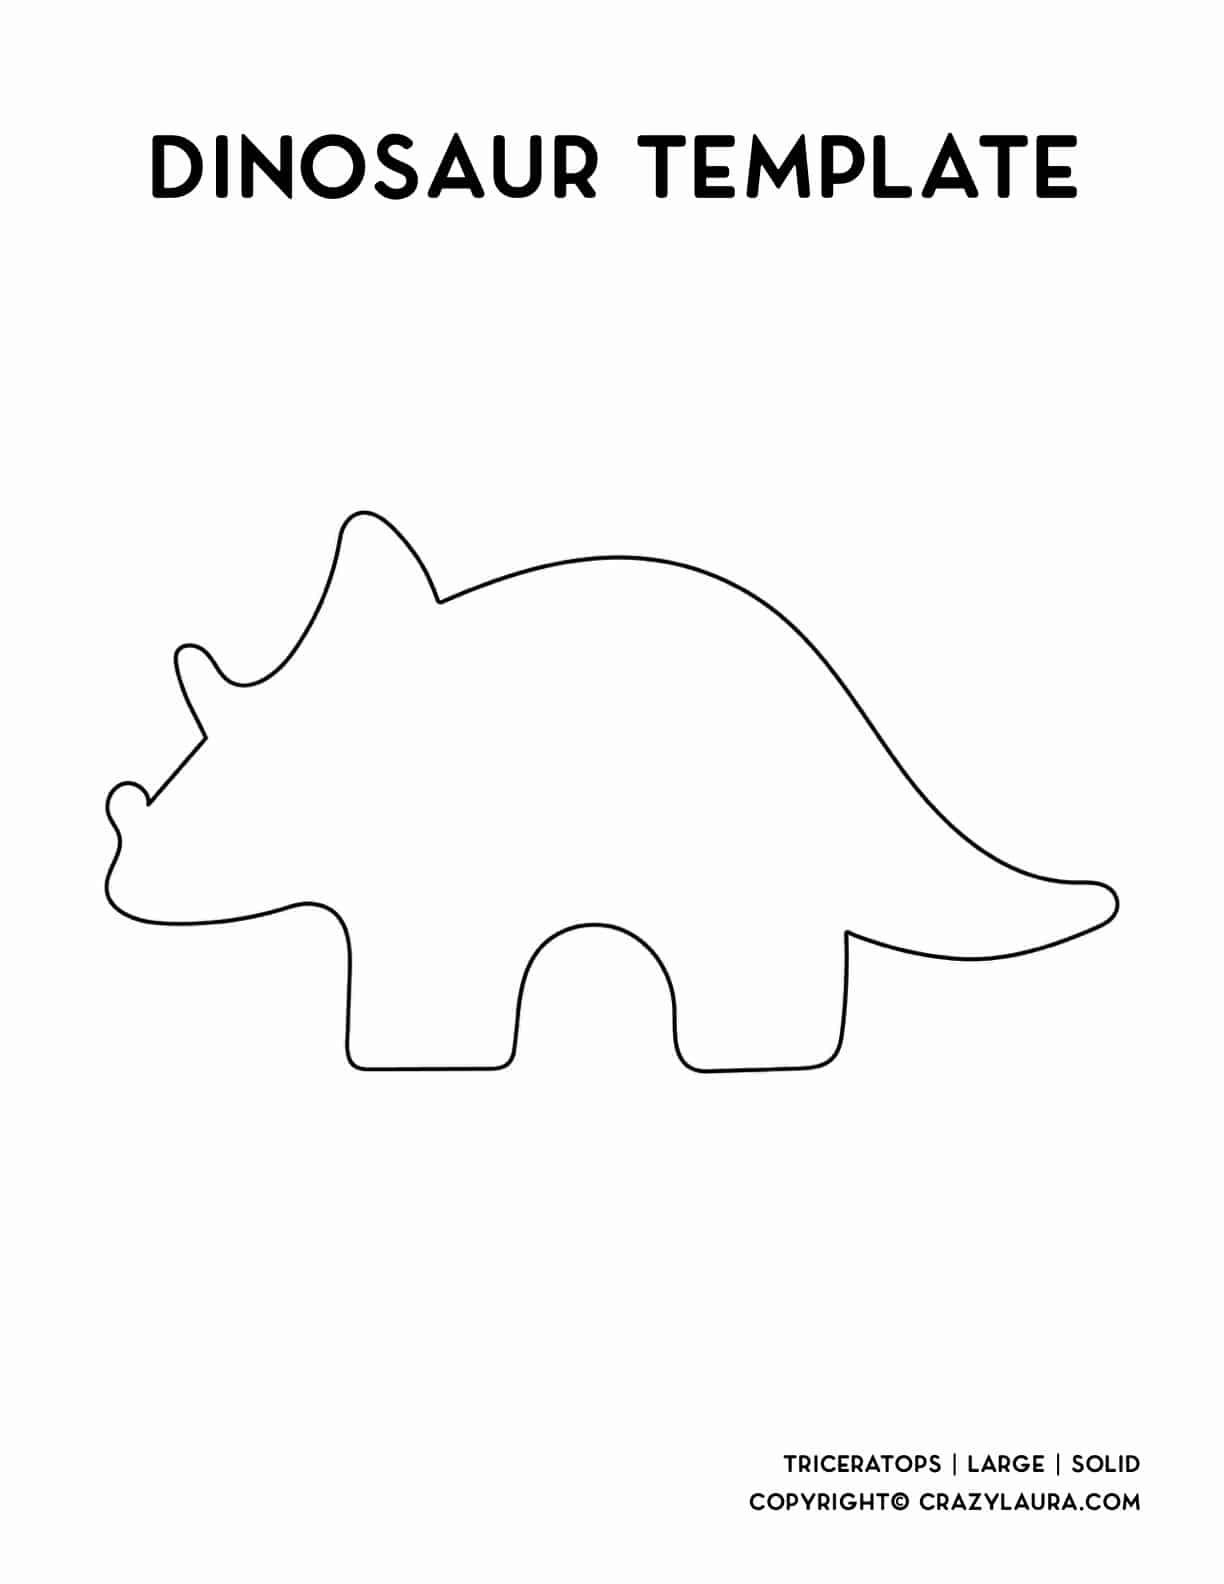 large triceratops outline for print and cut